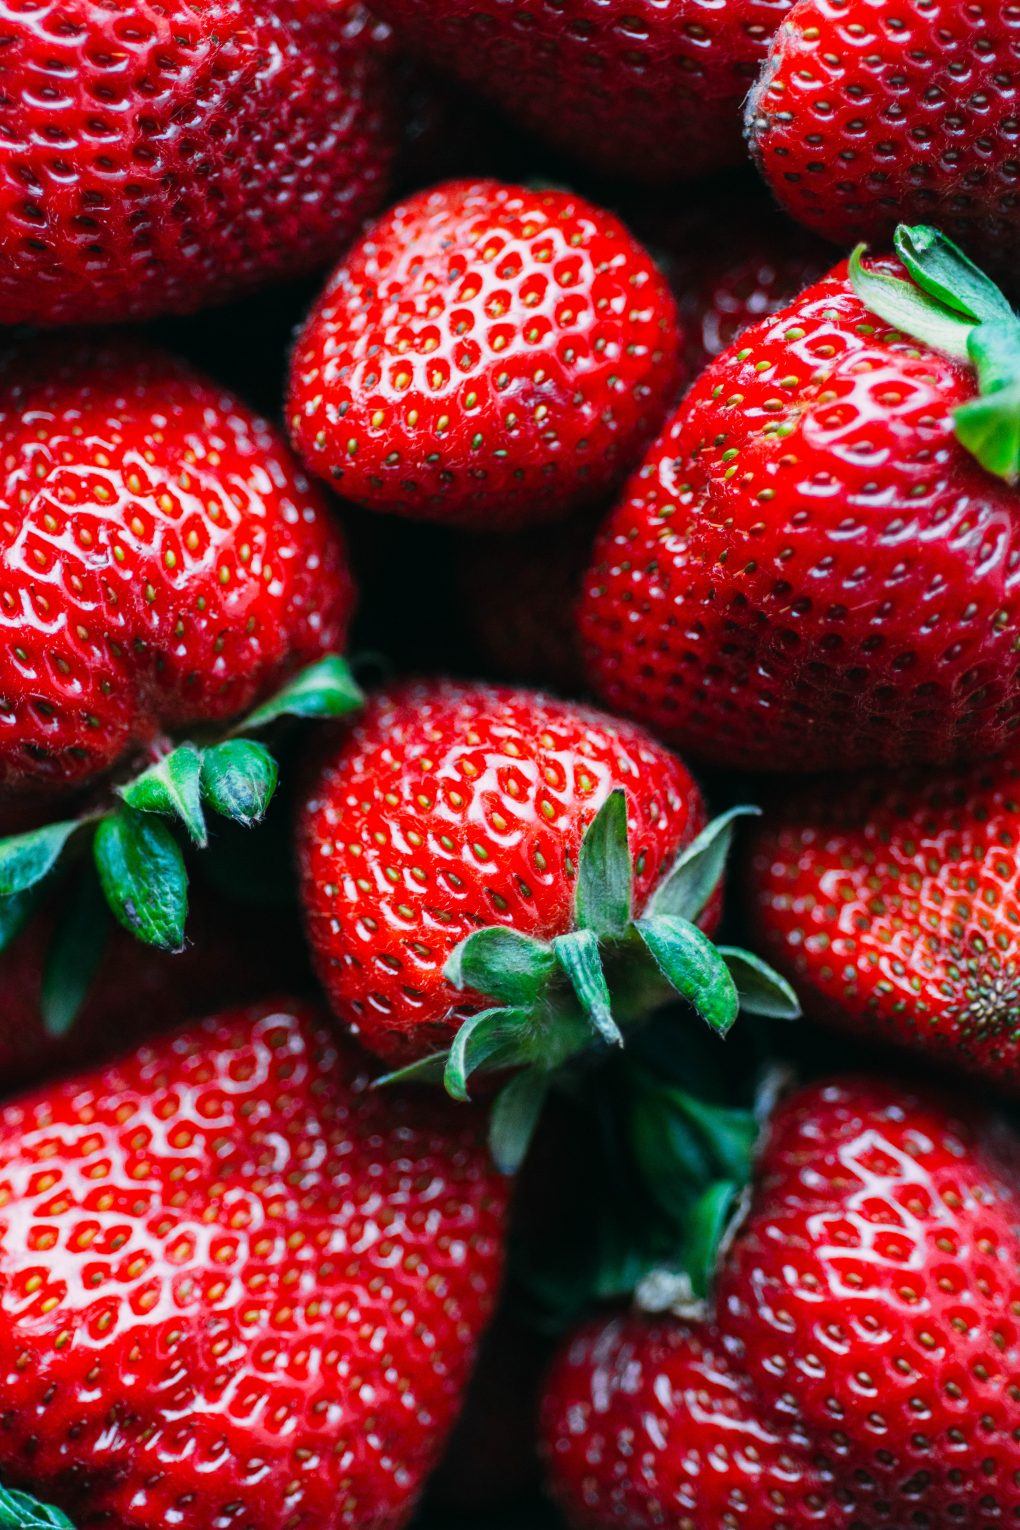 A close up view of some bright red fresh strawberries